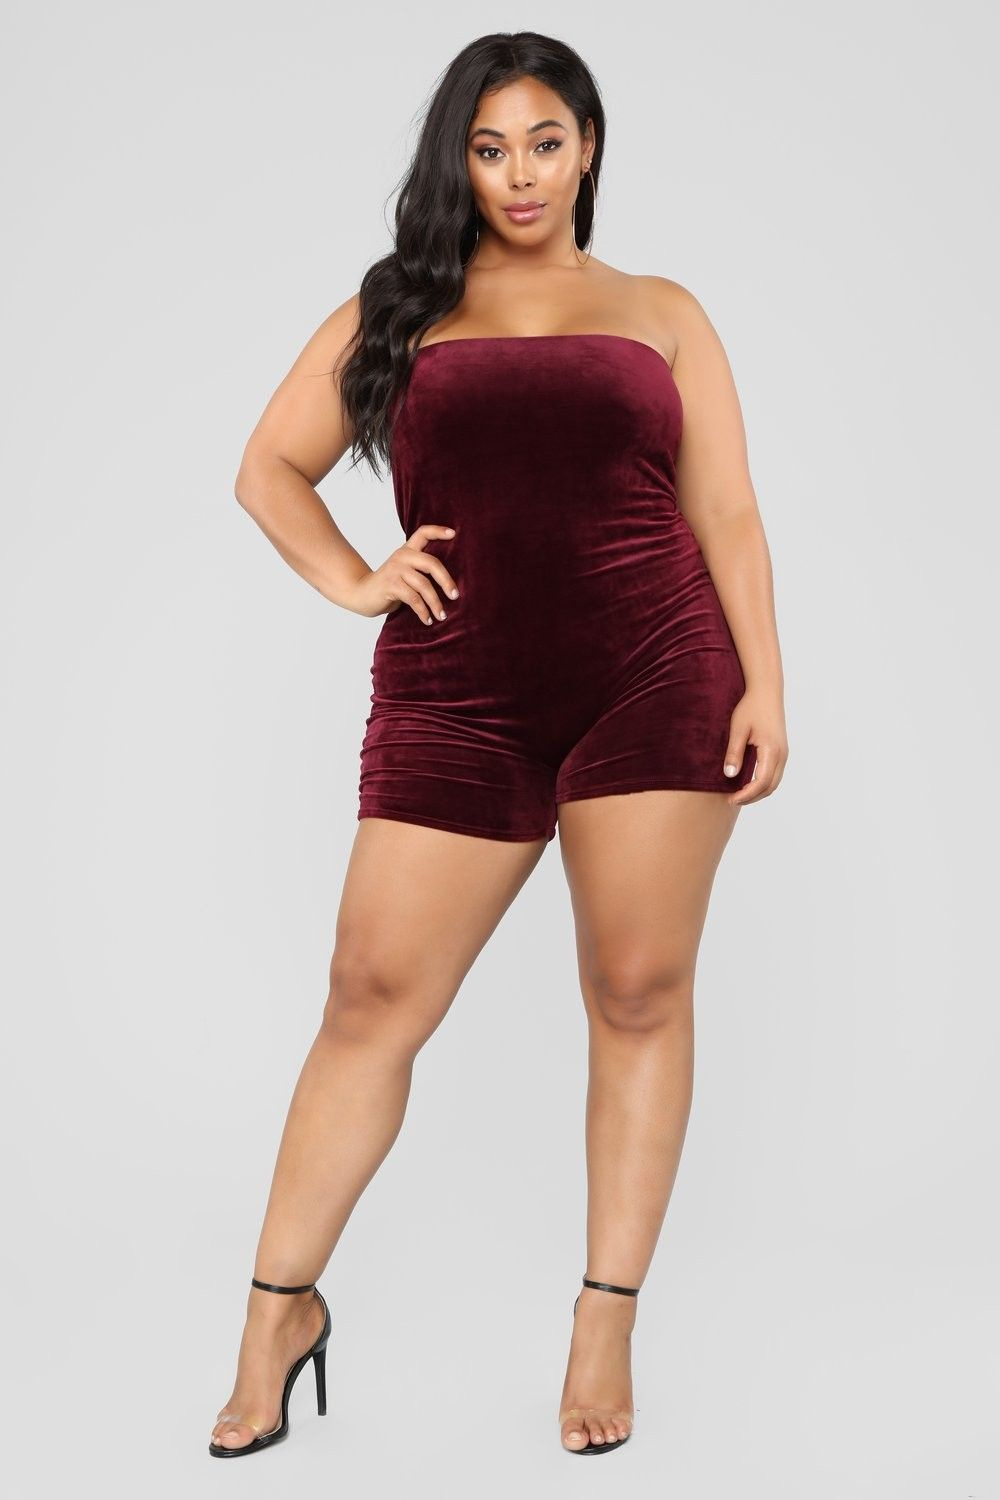 e8e630bcdaa5 Plus Size Buenos Aires Velour Romper - Burgundy  19.99  ootd  style   fashion